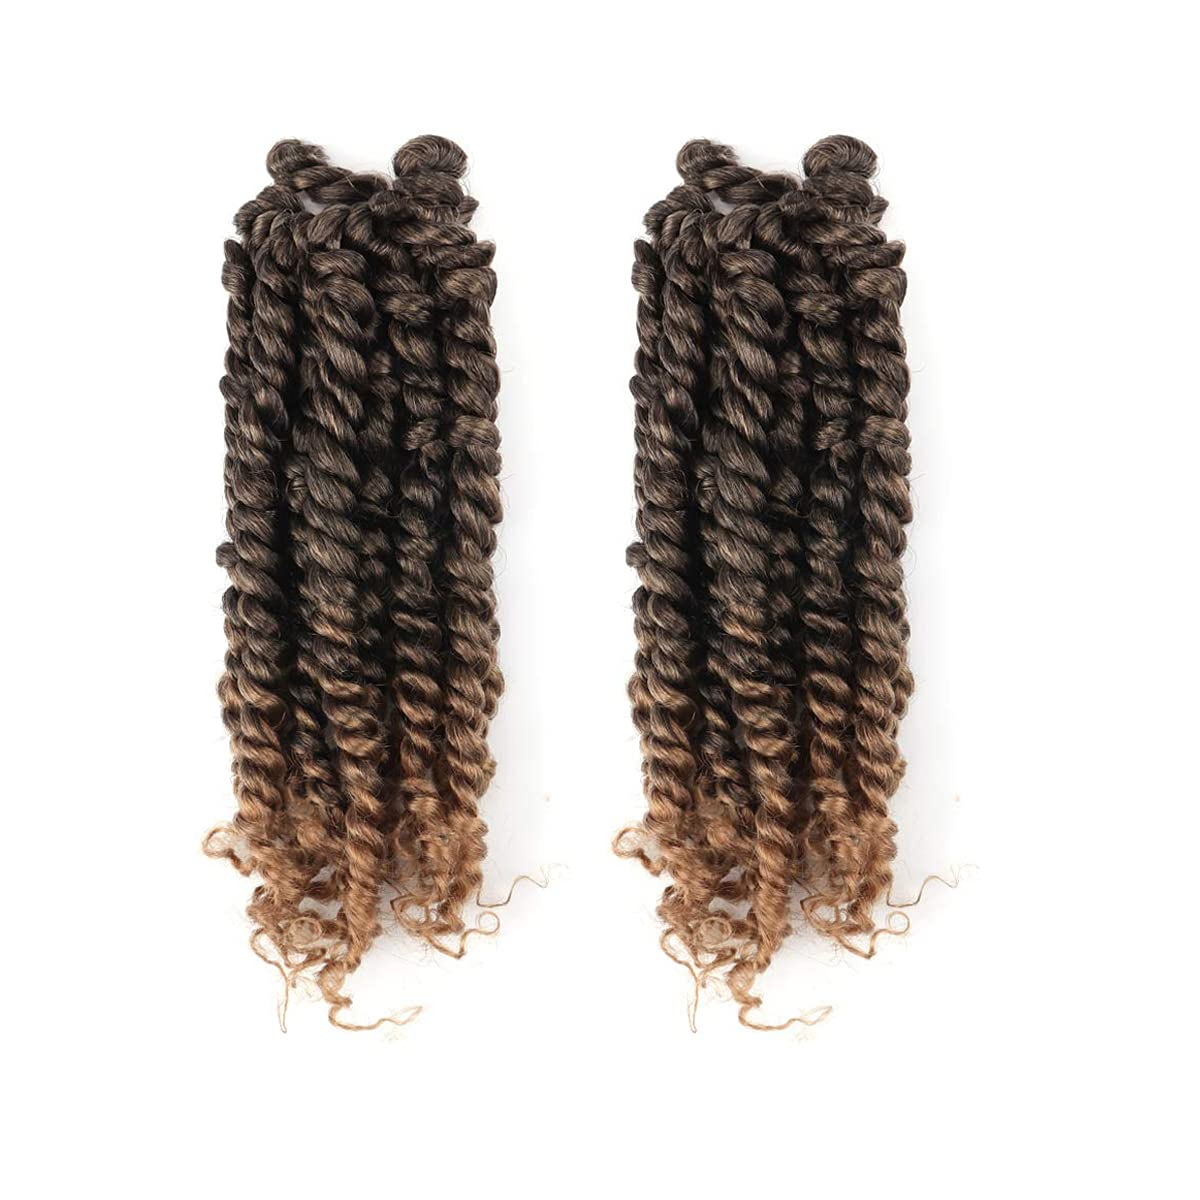 10 Inch 2 Packs free shipping Hahoness Twist Passion Ranking TOP20 Pre-twisted Hair-Ombre Go